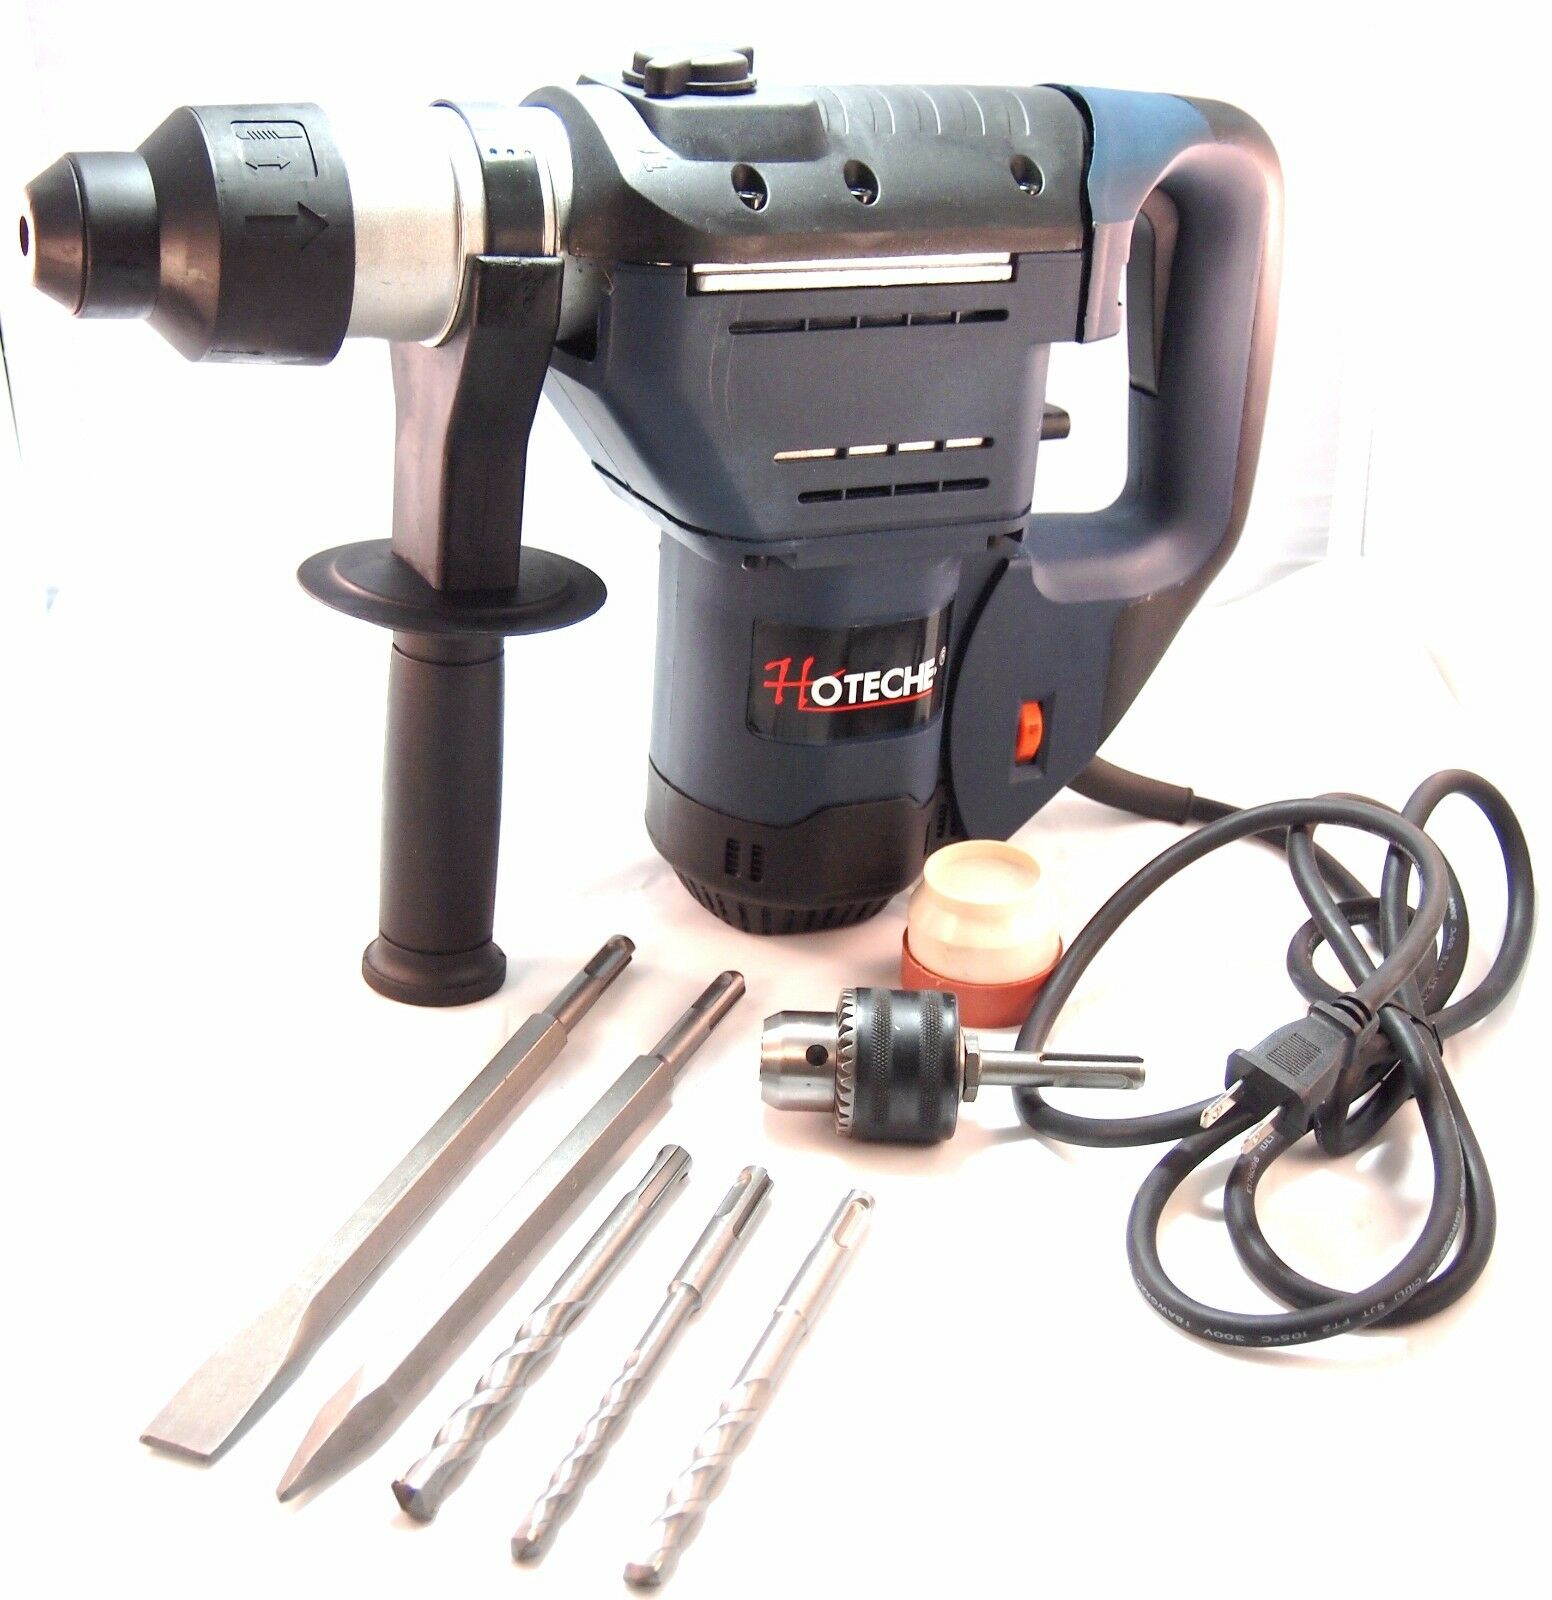 1-1 2  SDS Plus Rotary Hammer Drill 3 Functions